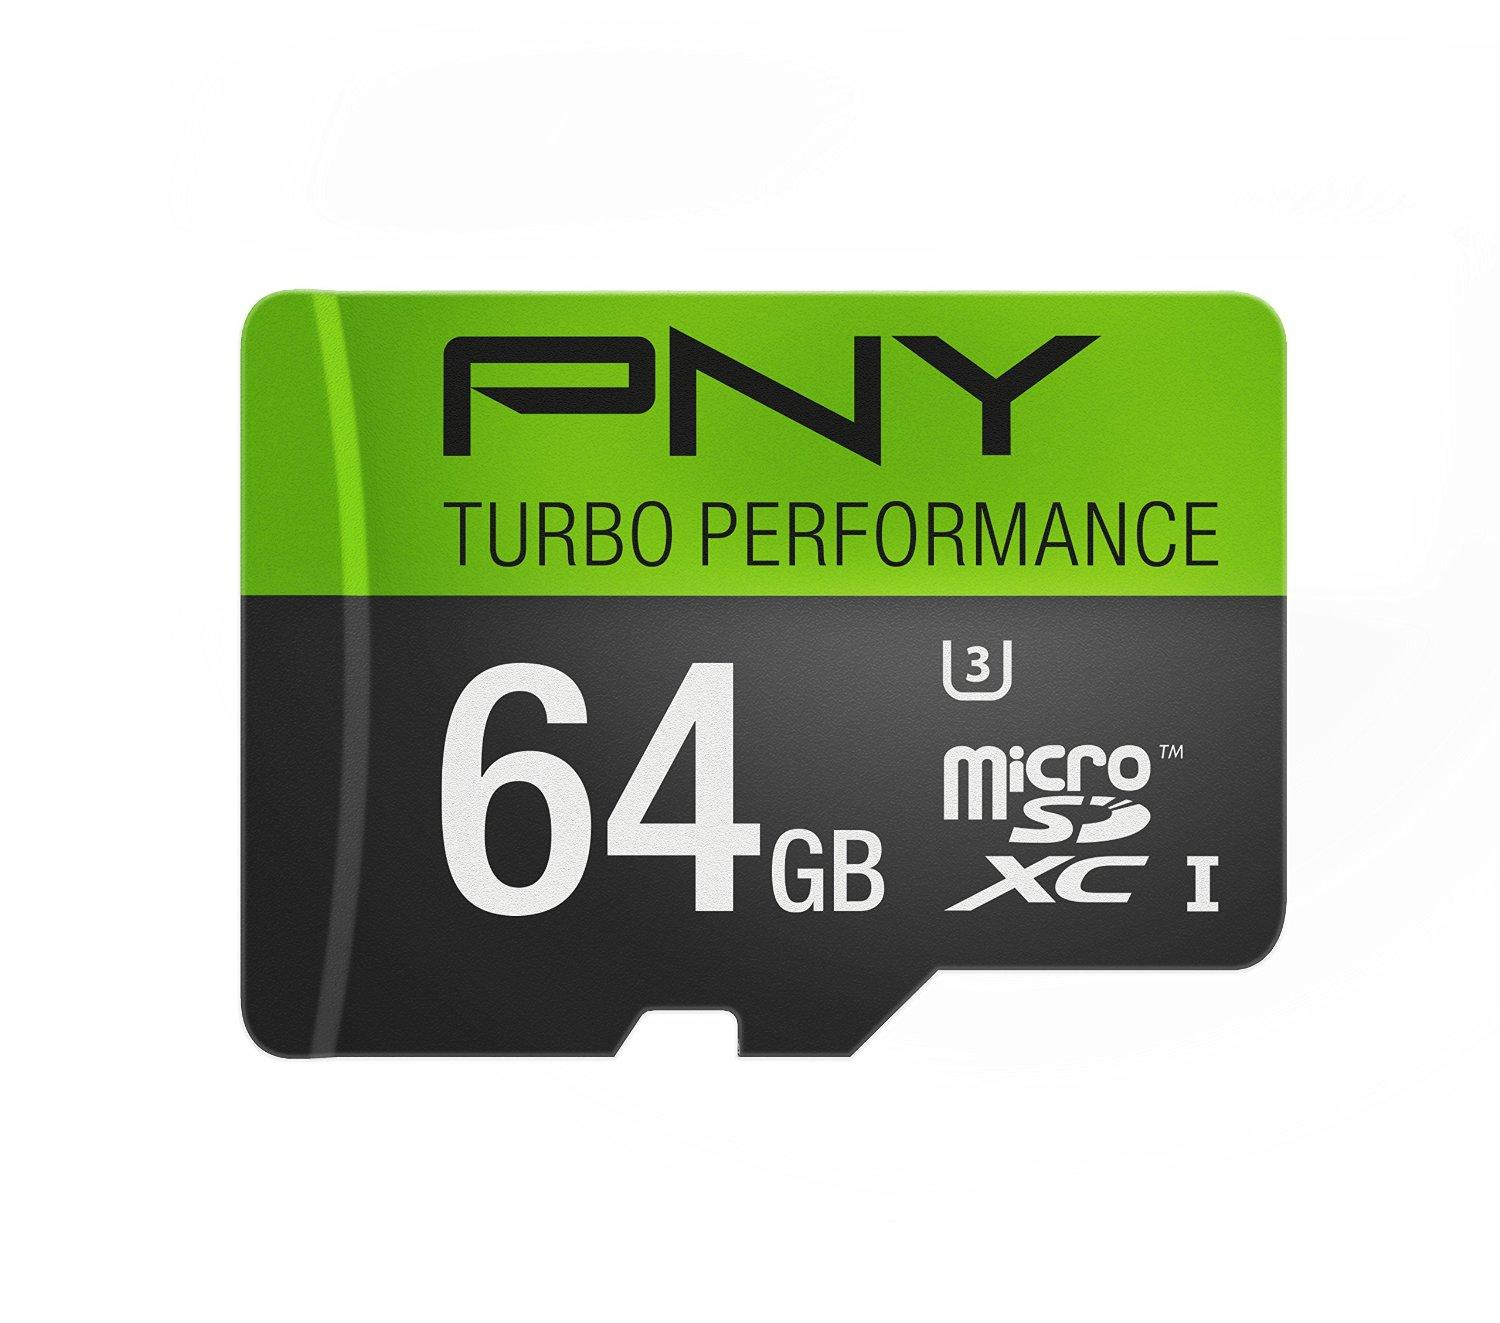 Up to 70% off Select PNY memory products @amazon.com